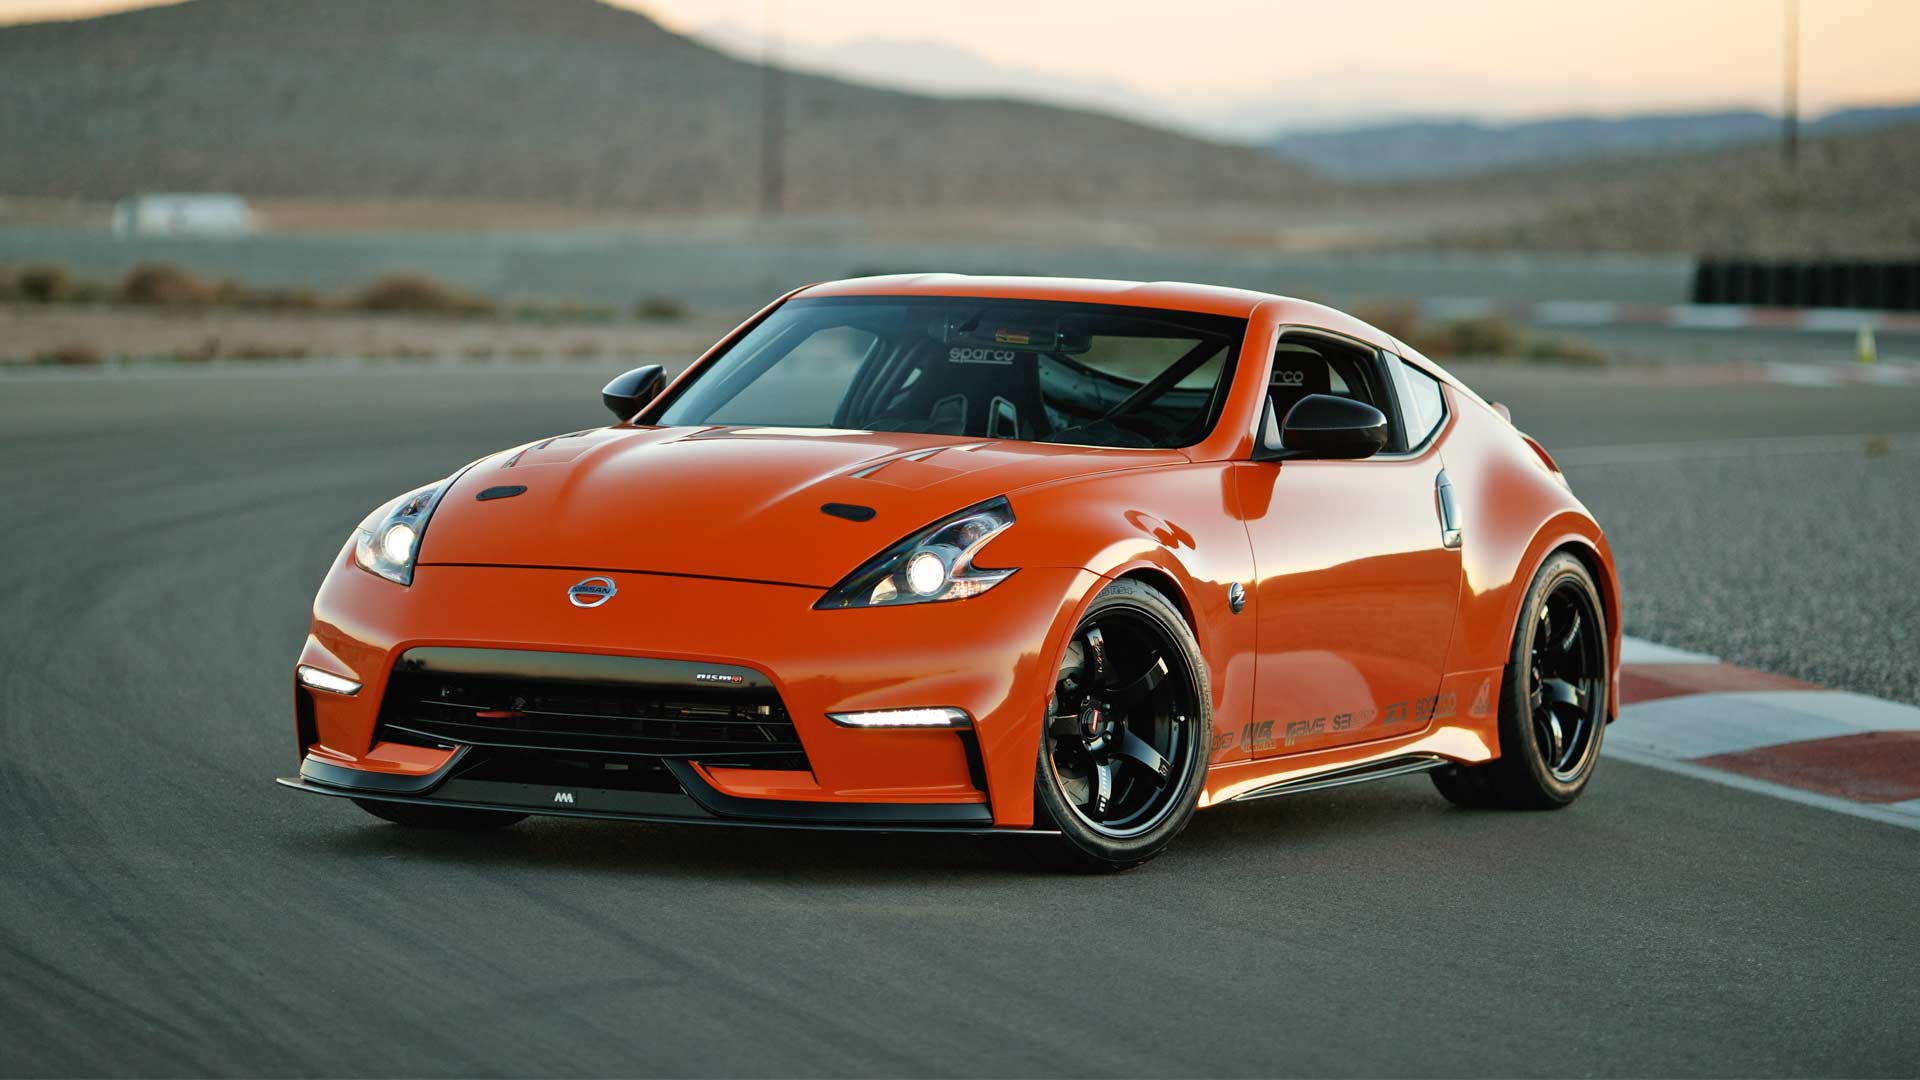 Nissan-370Z-Project-Clubsport-23